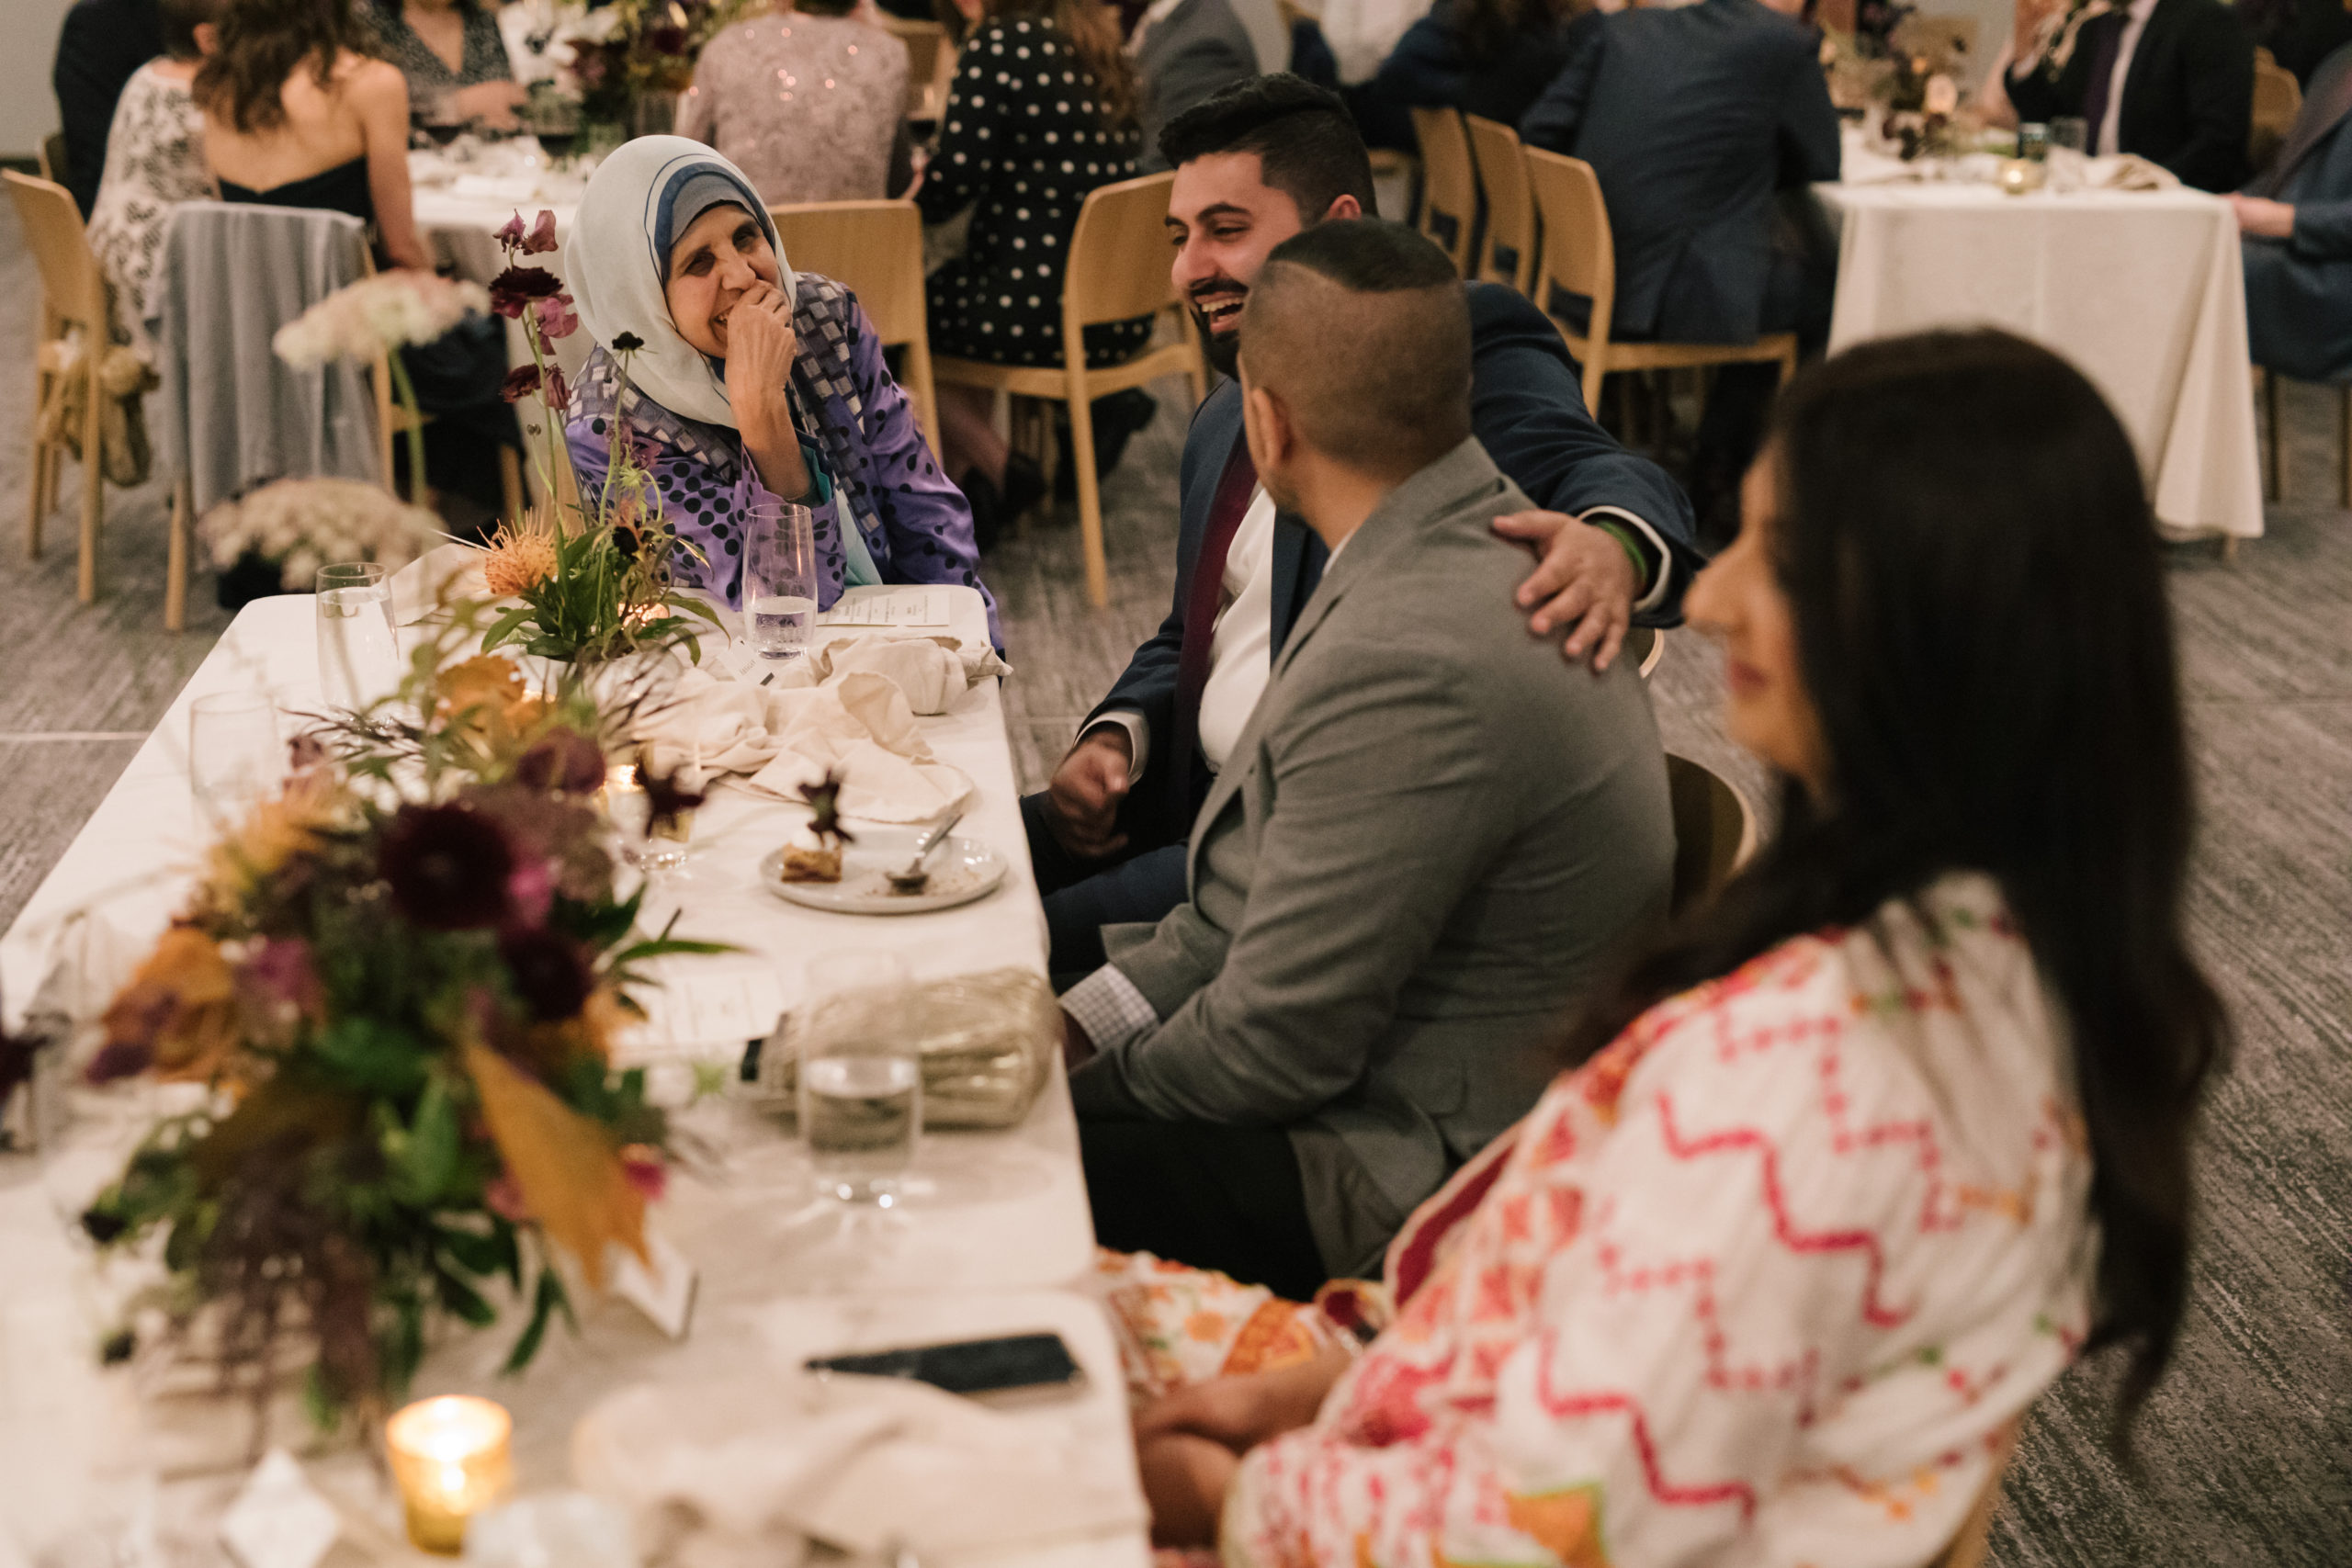 Intimate dinner at small wedding